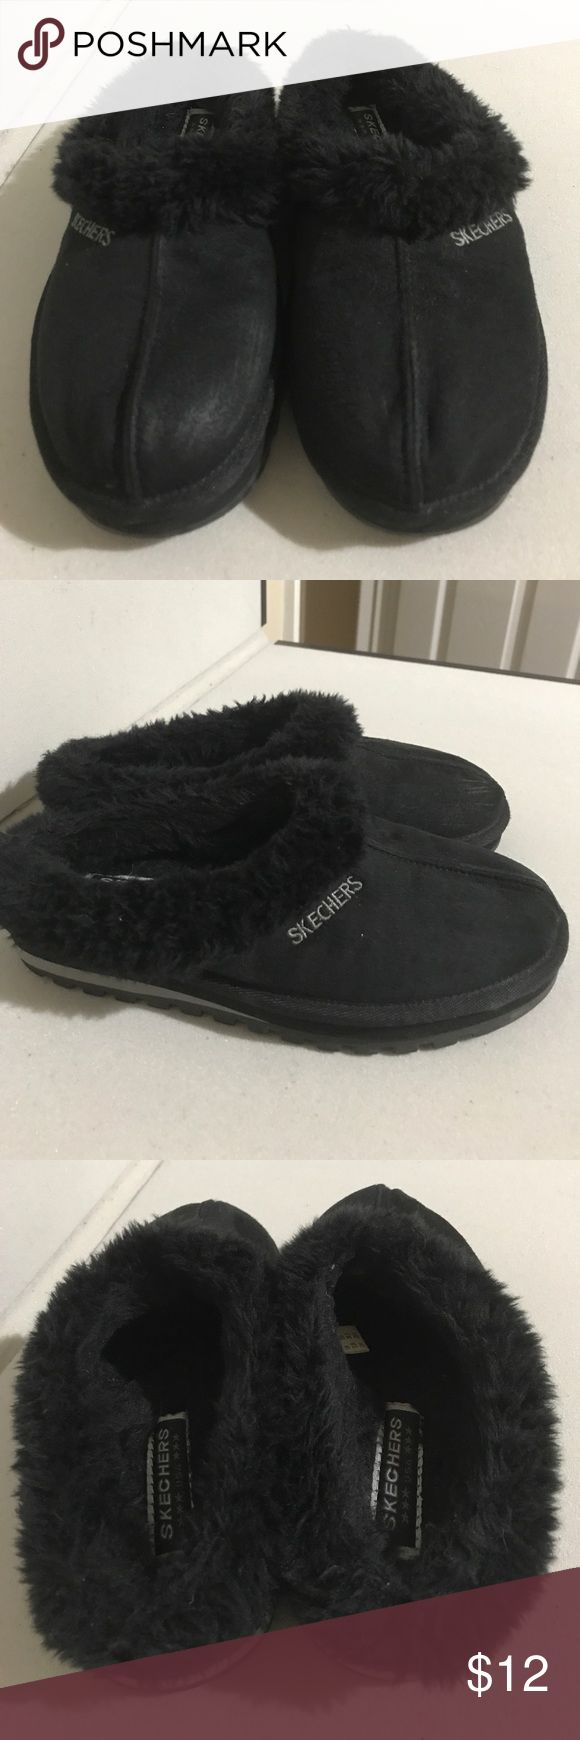 Skechers Black Suede Fuex Fur Mules Sz 6.5 Very good preowned condition. Skechers Shoes Mules & Clogs